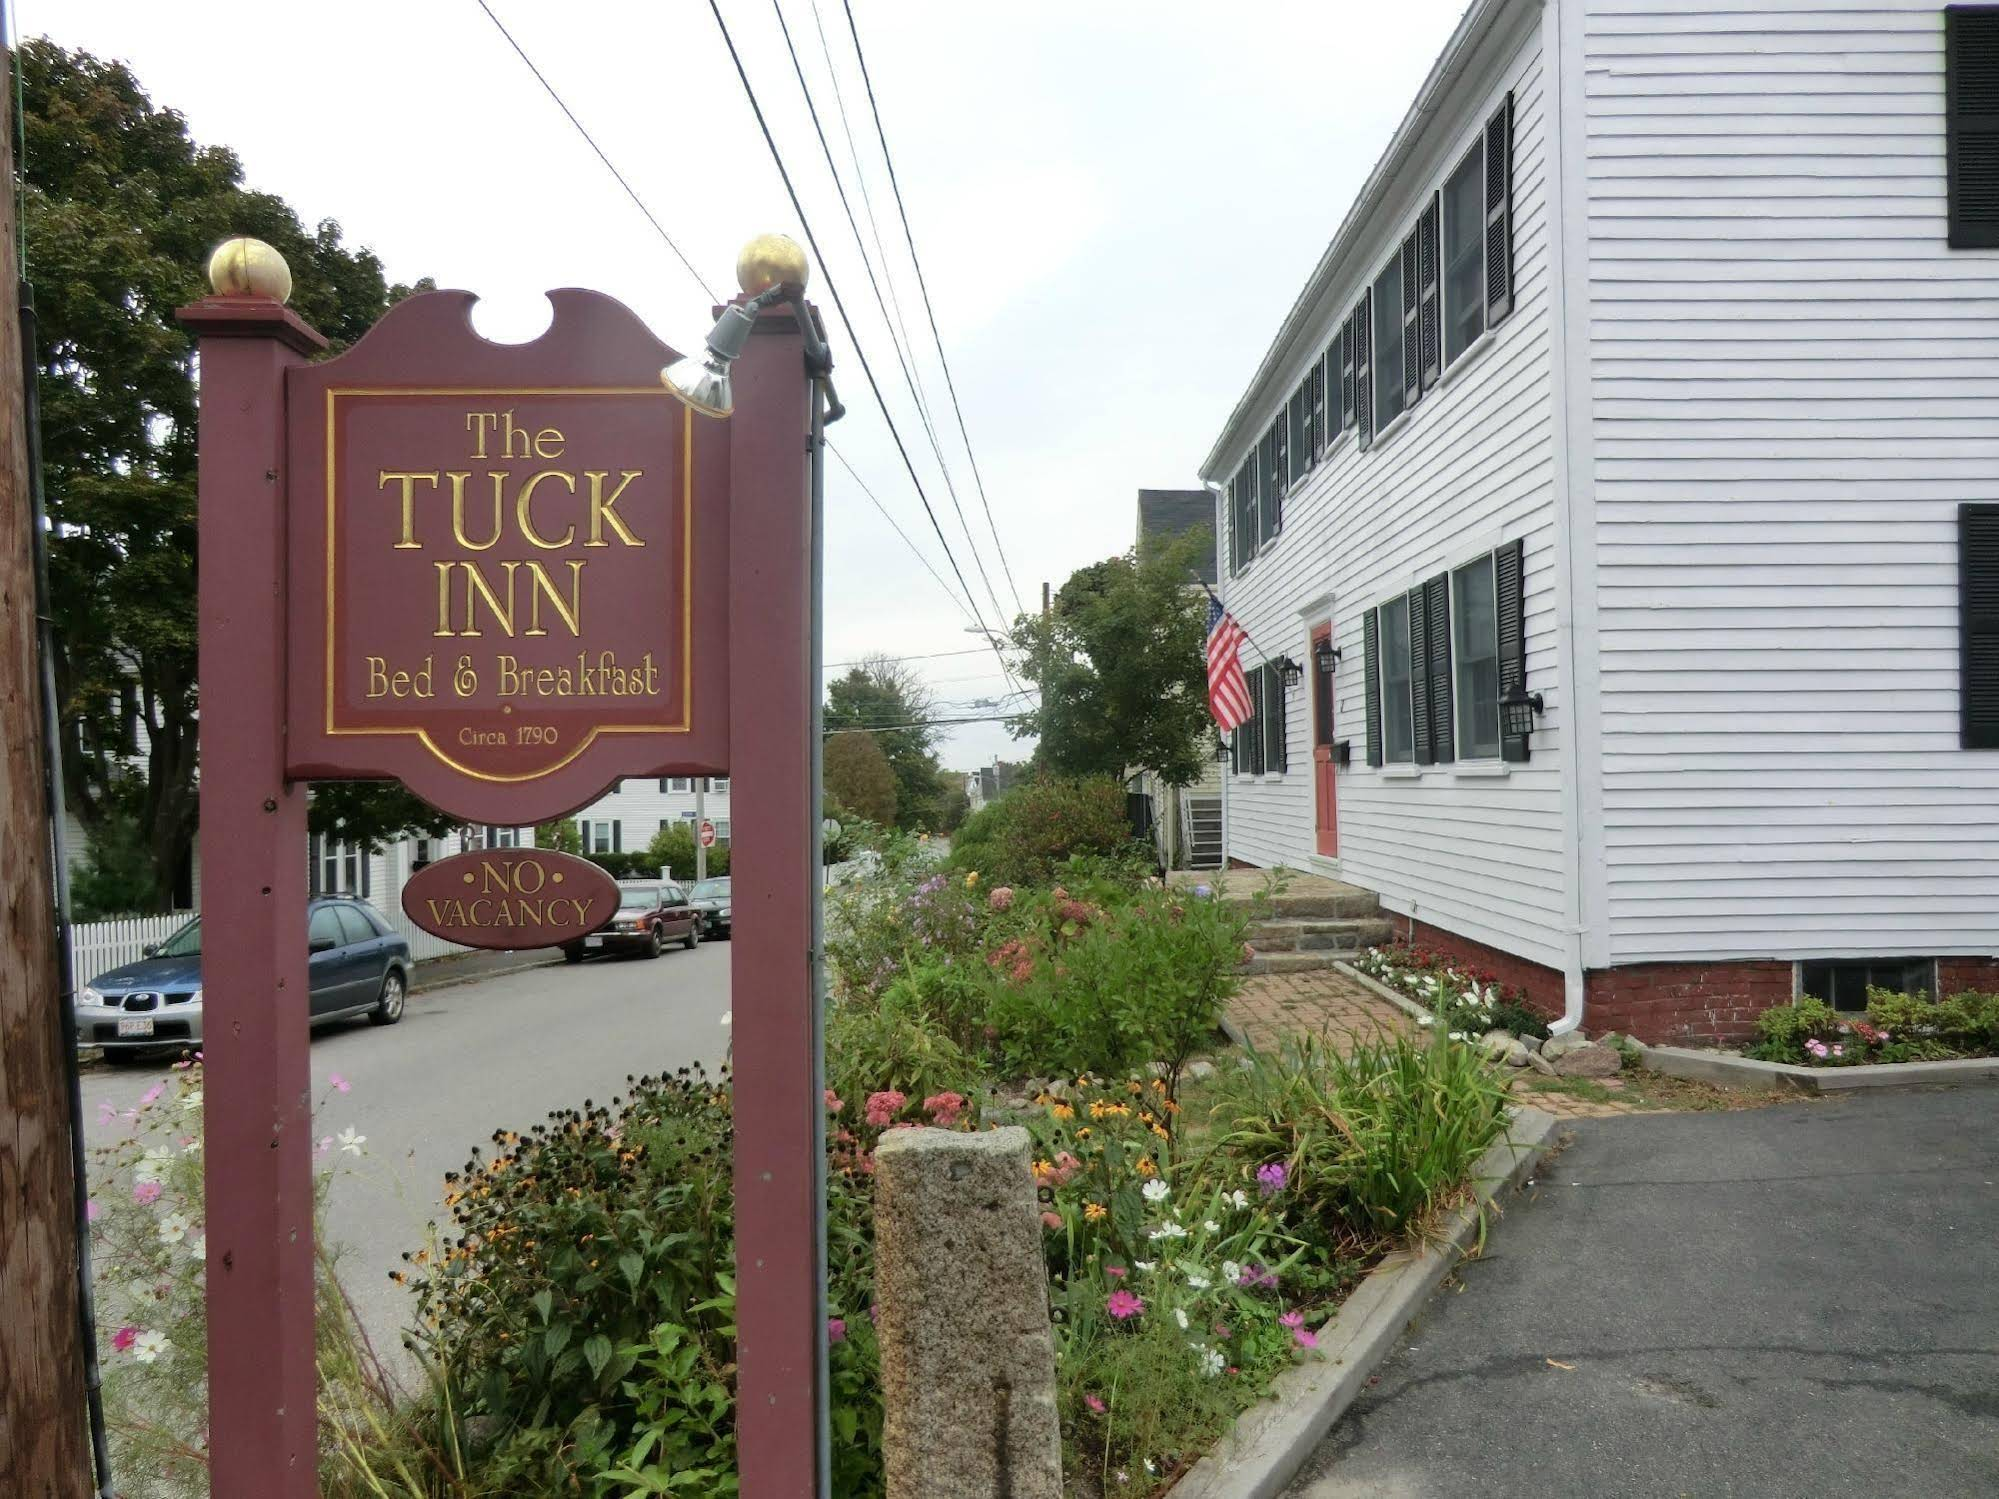 The Tuck Inn